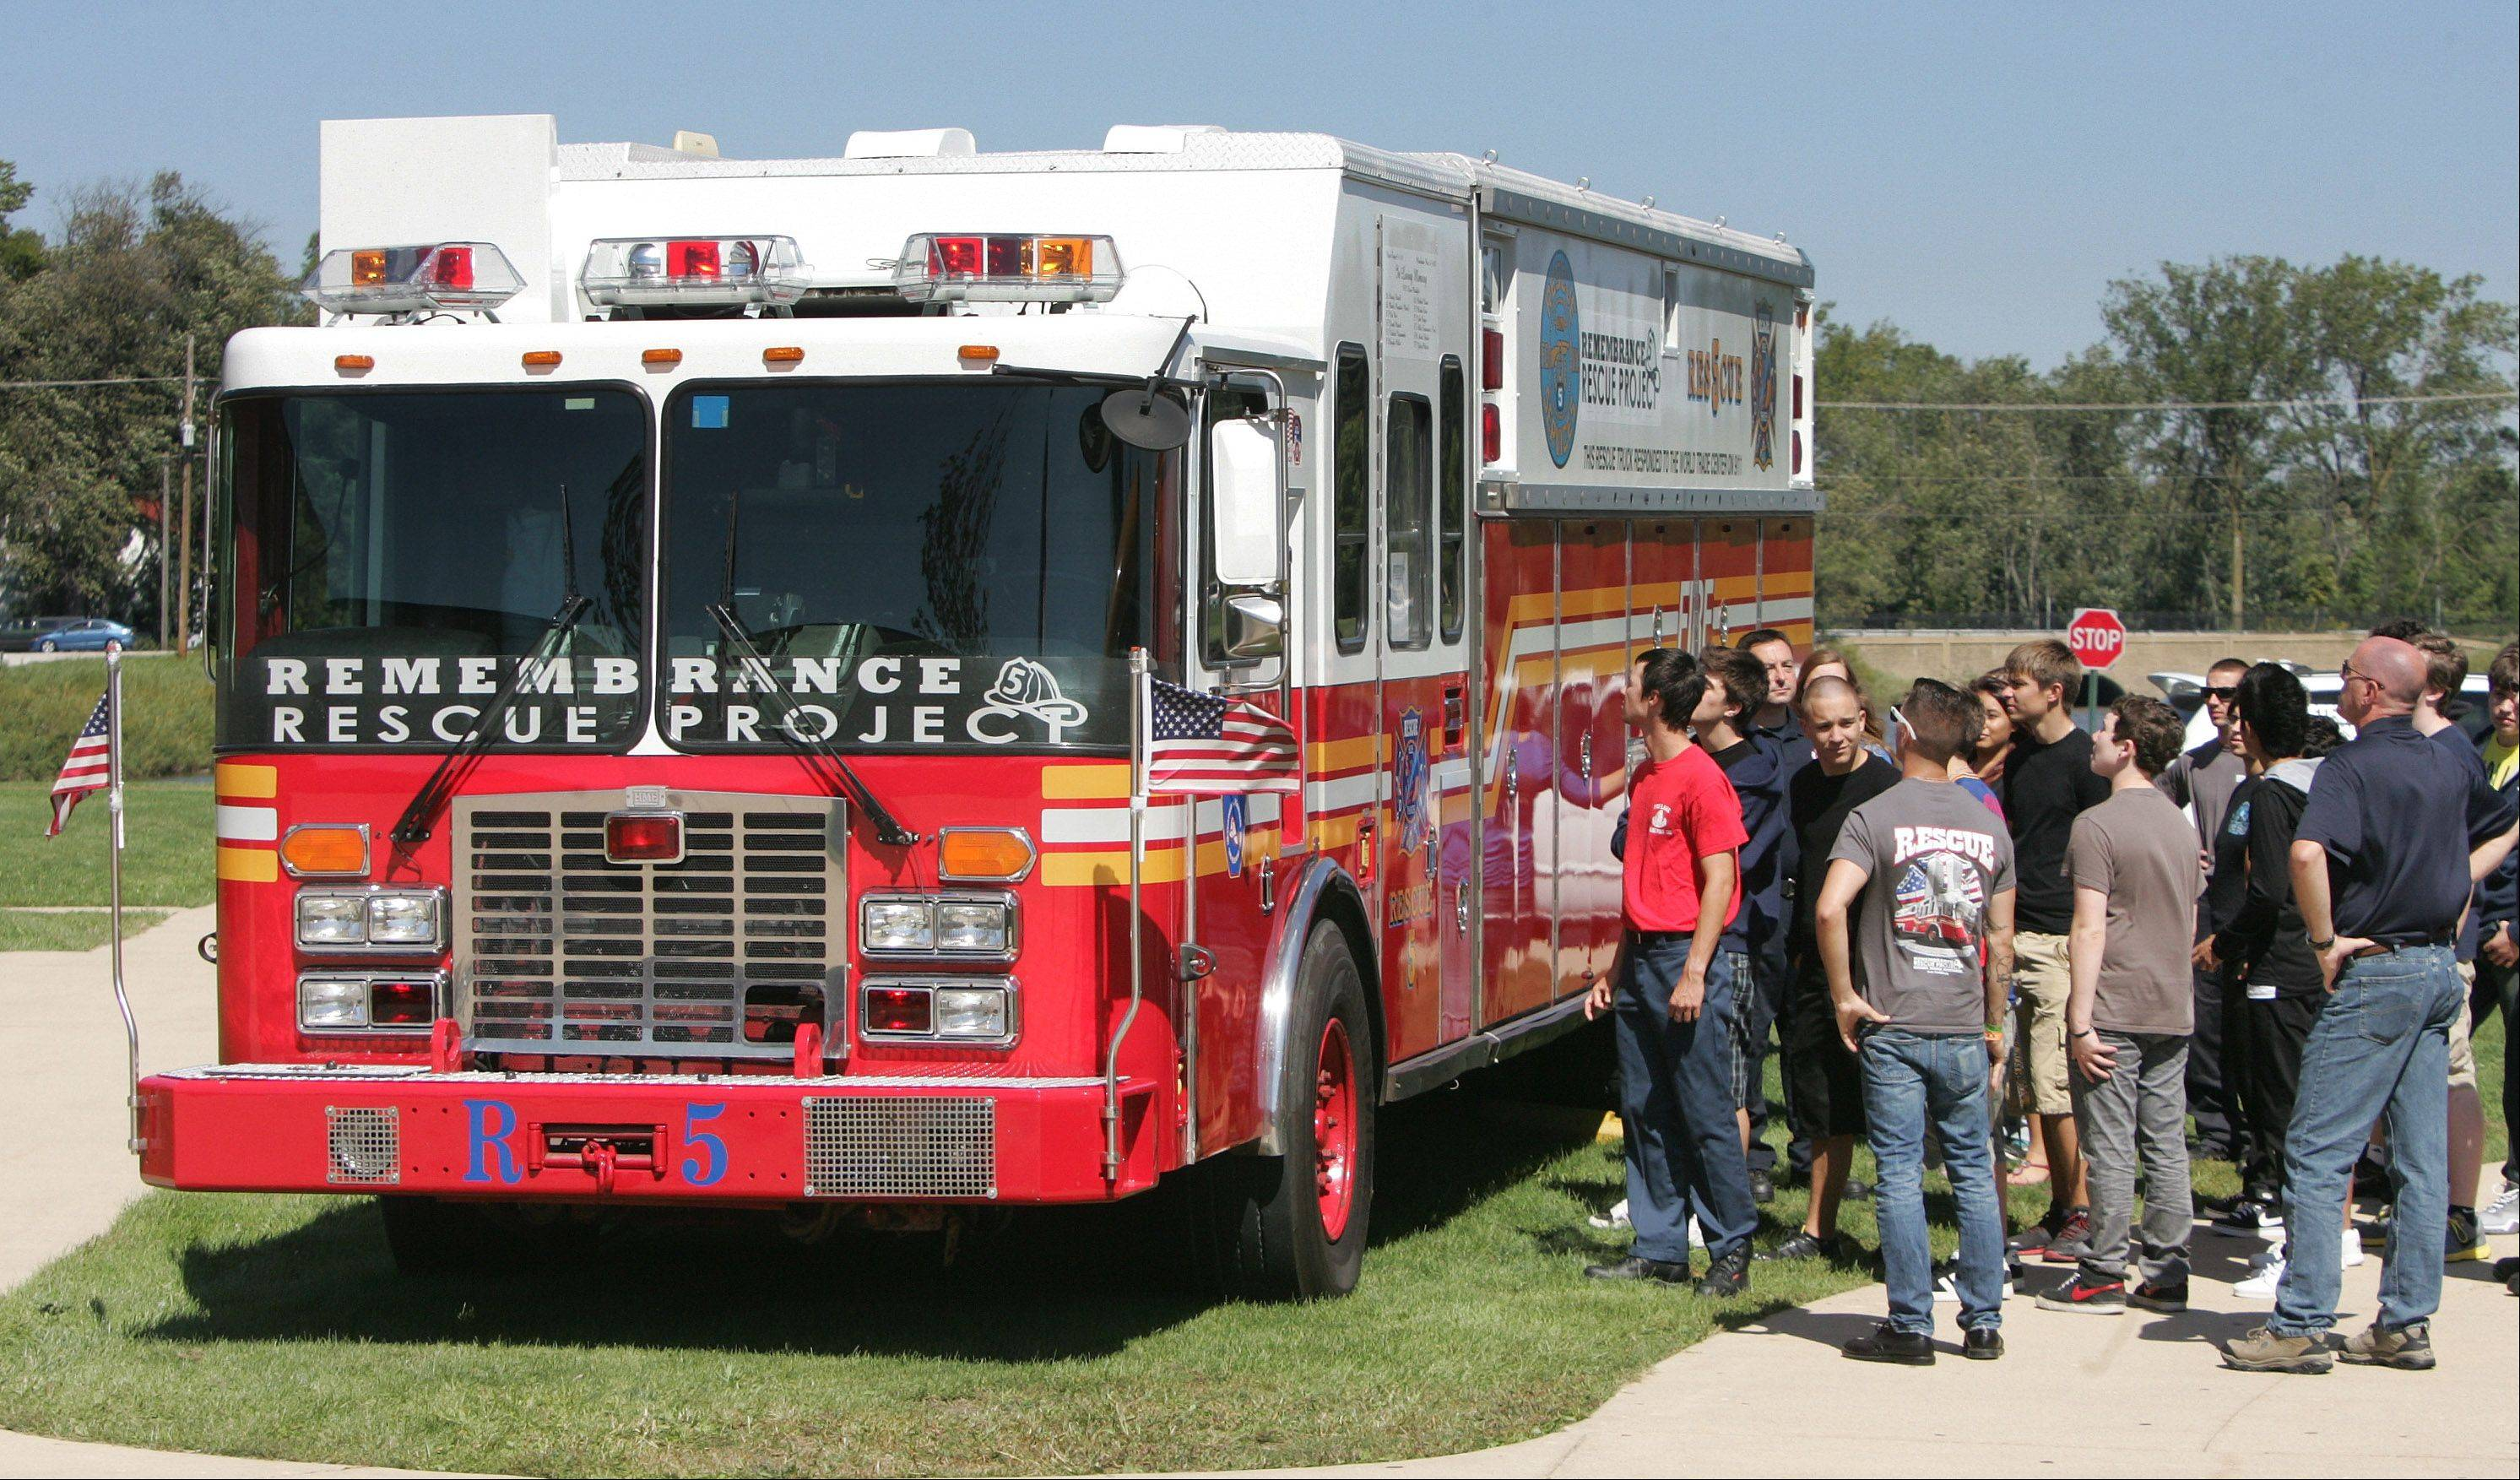 Members of a fire service class look at New York Fire Department Rescue 5 engine on display during the 9/11 Ceremony Tuesday at the Lake County High Schools Technology Campus in Grayslake. The fire truck was on the scene in New York on September 11, 2001- all eleven firefighters with the truck at the time lost their lives. The truck was restored by Remembrance Rescue Project.